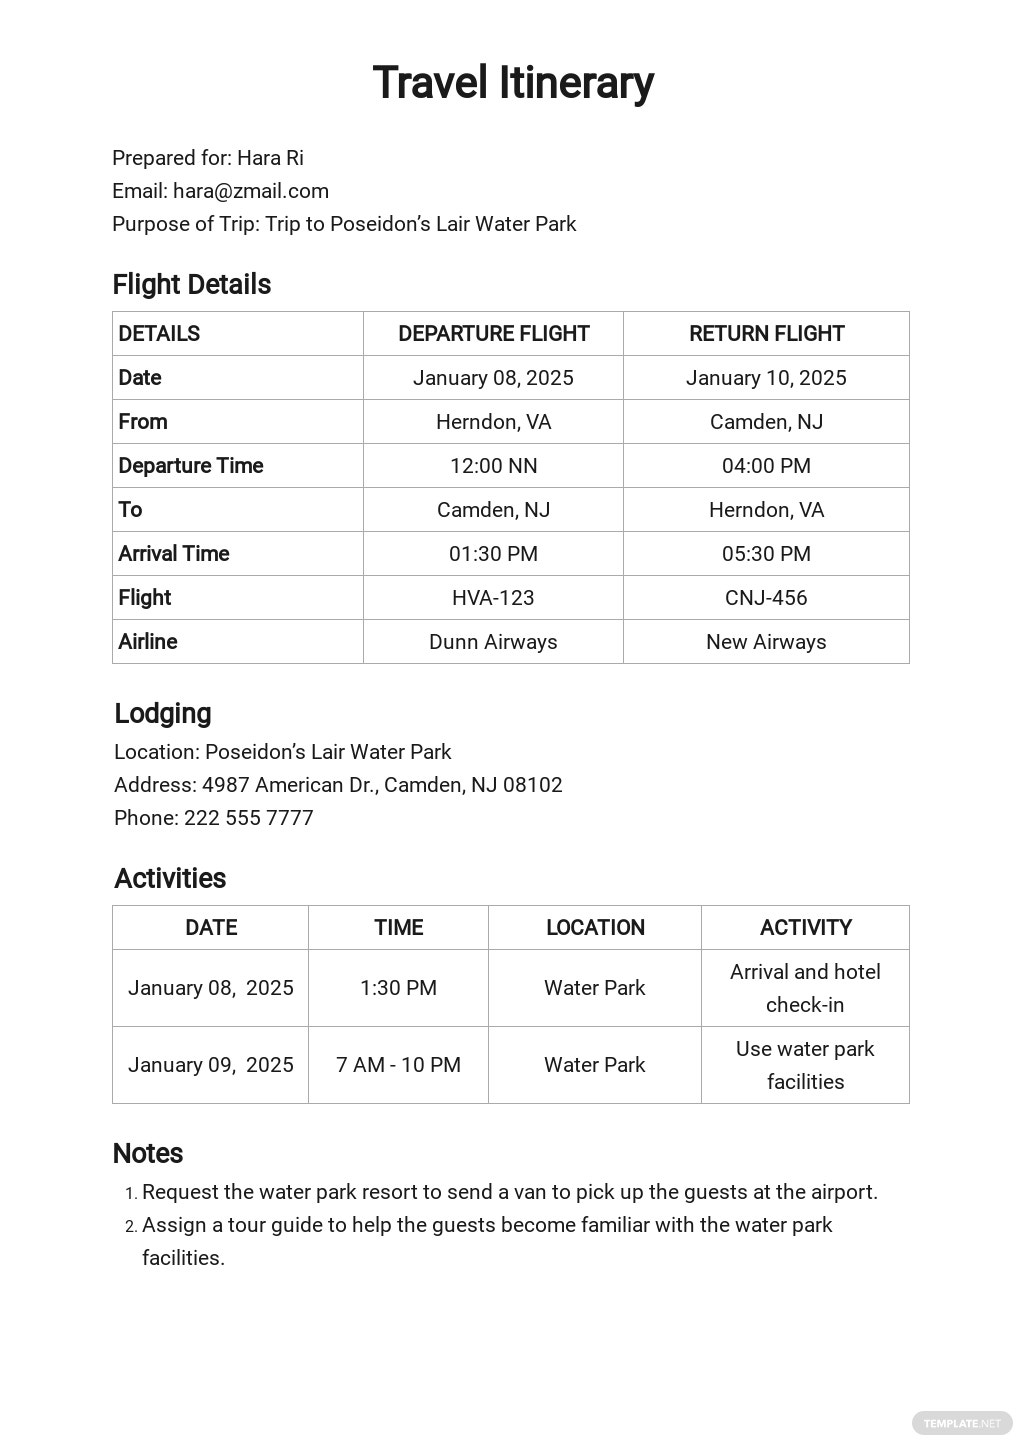 Travel Itinerary Spreadsheet Template